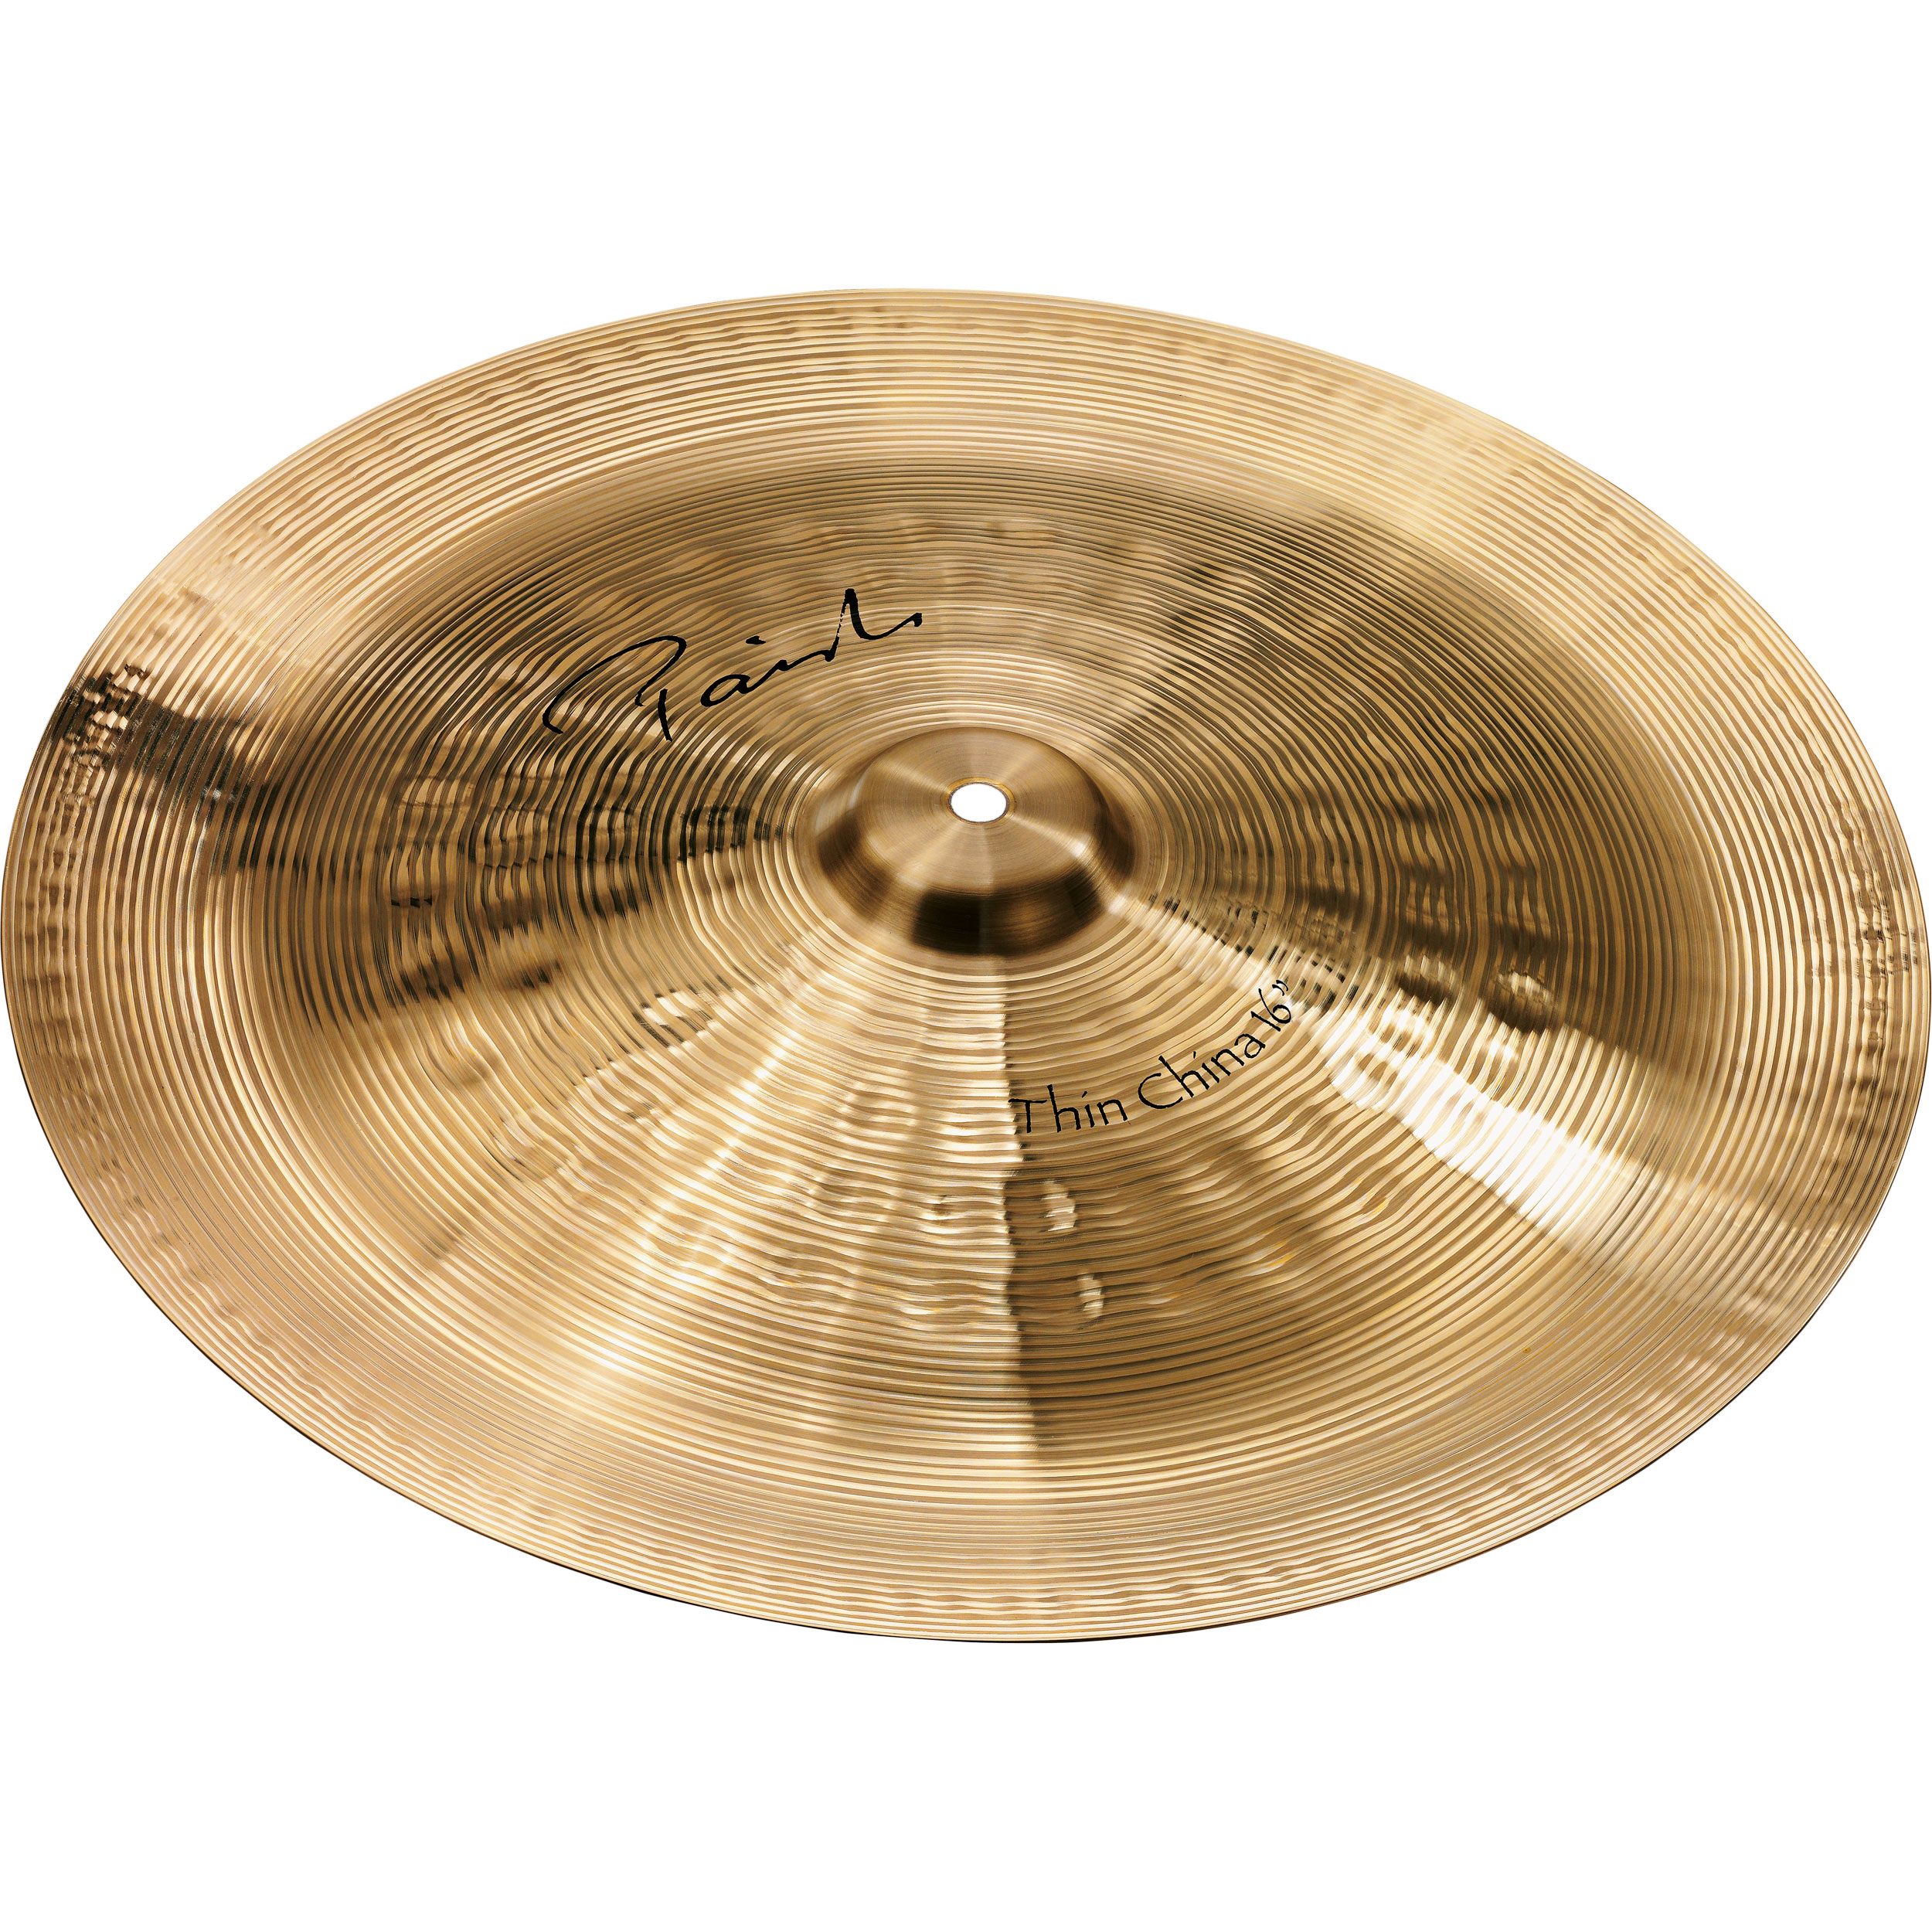 "Paiste 16"" Signature Series Thin China Cymbal"